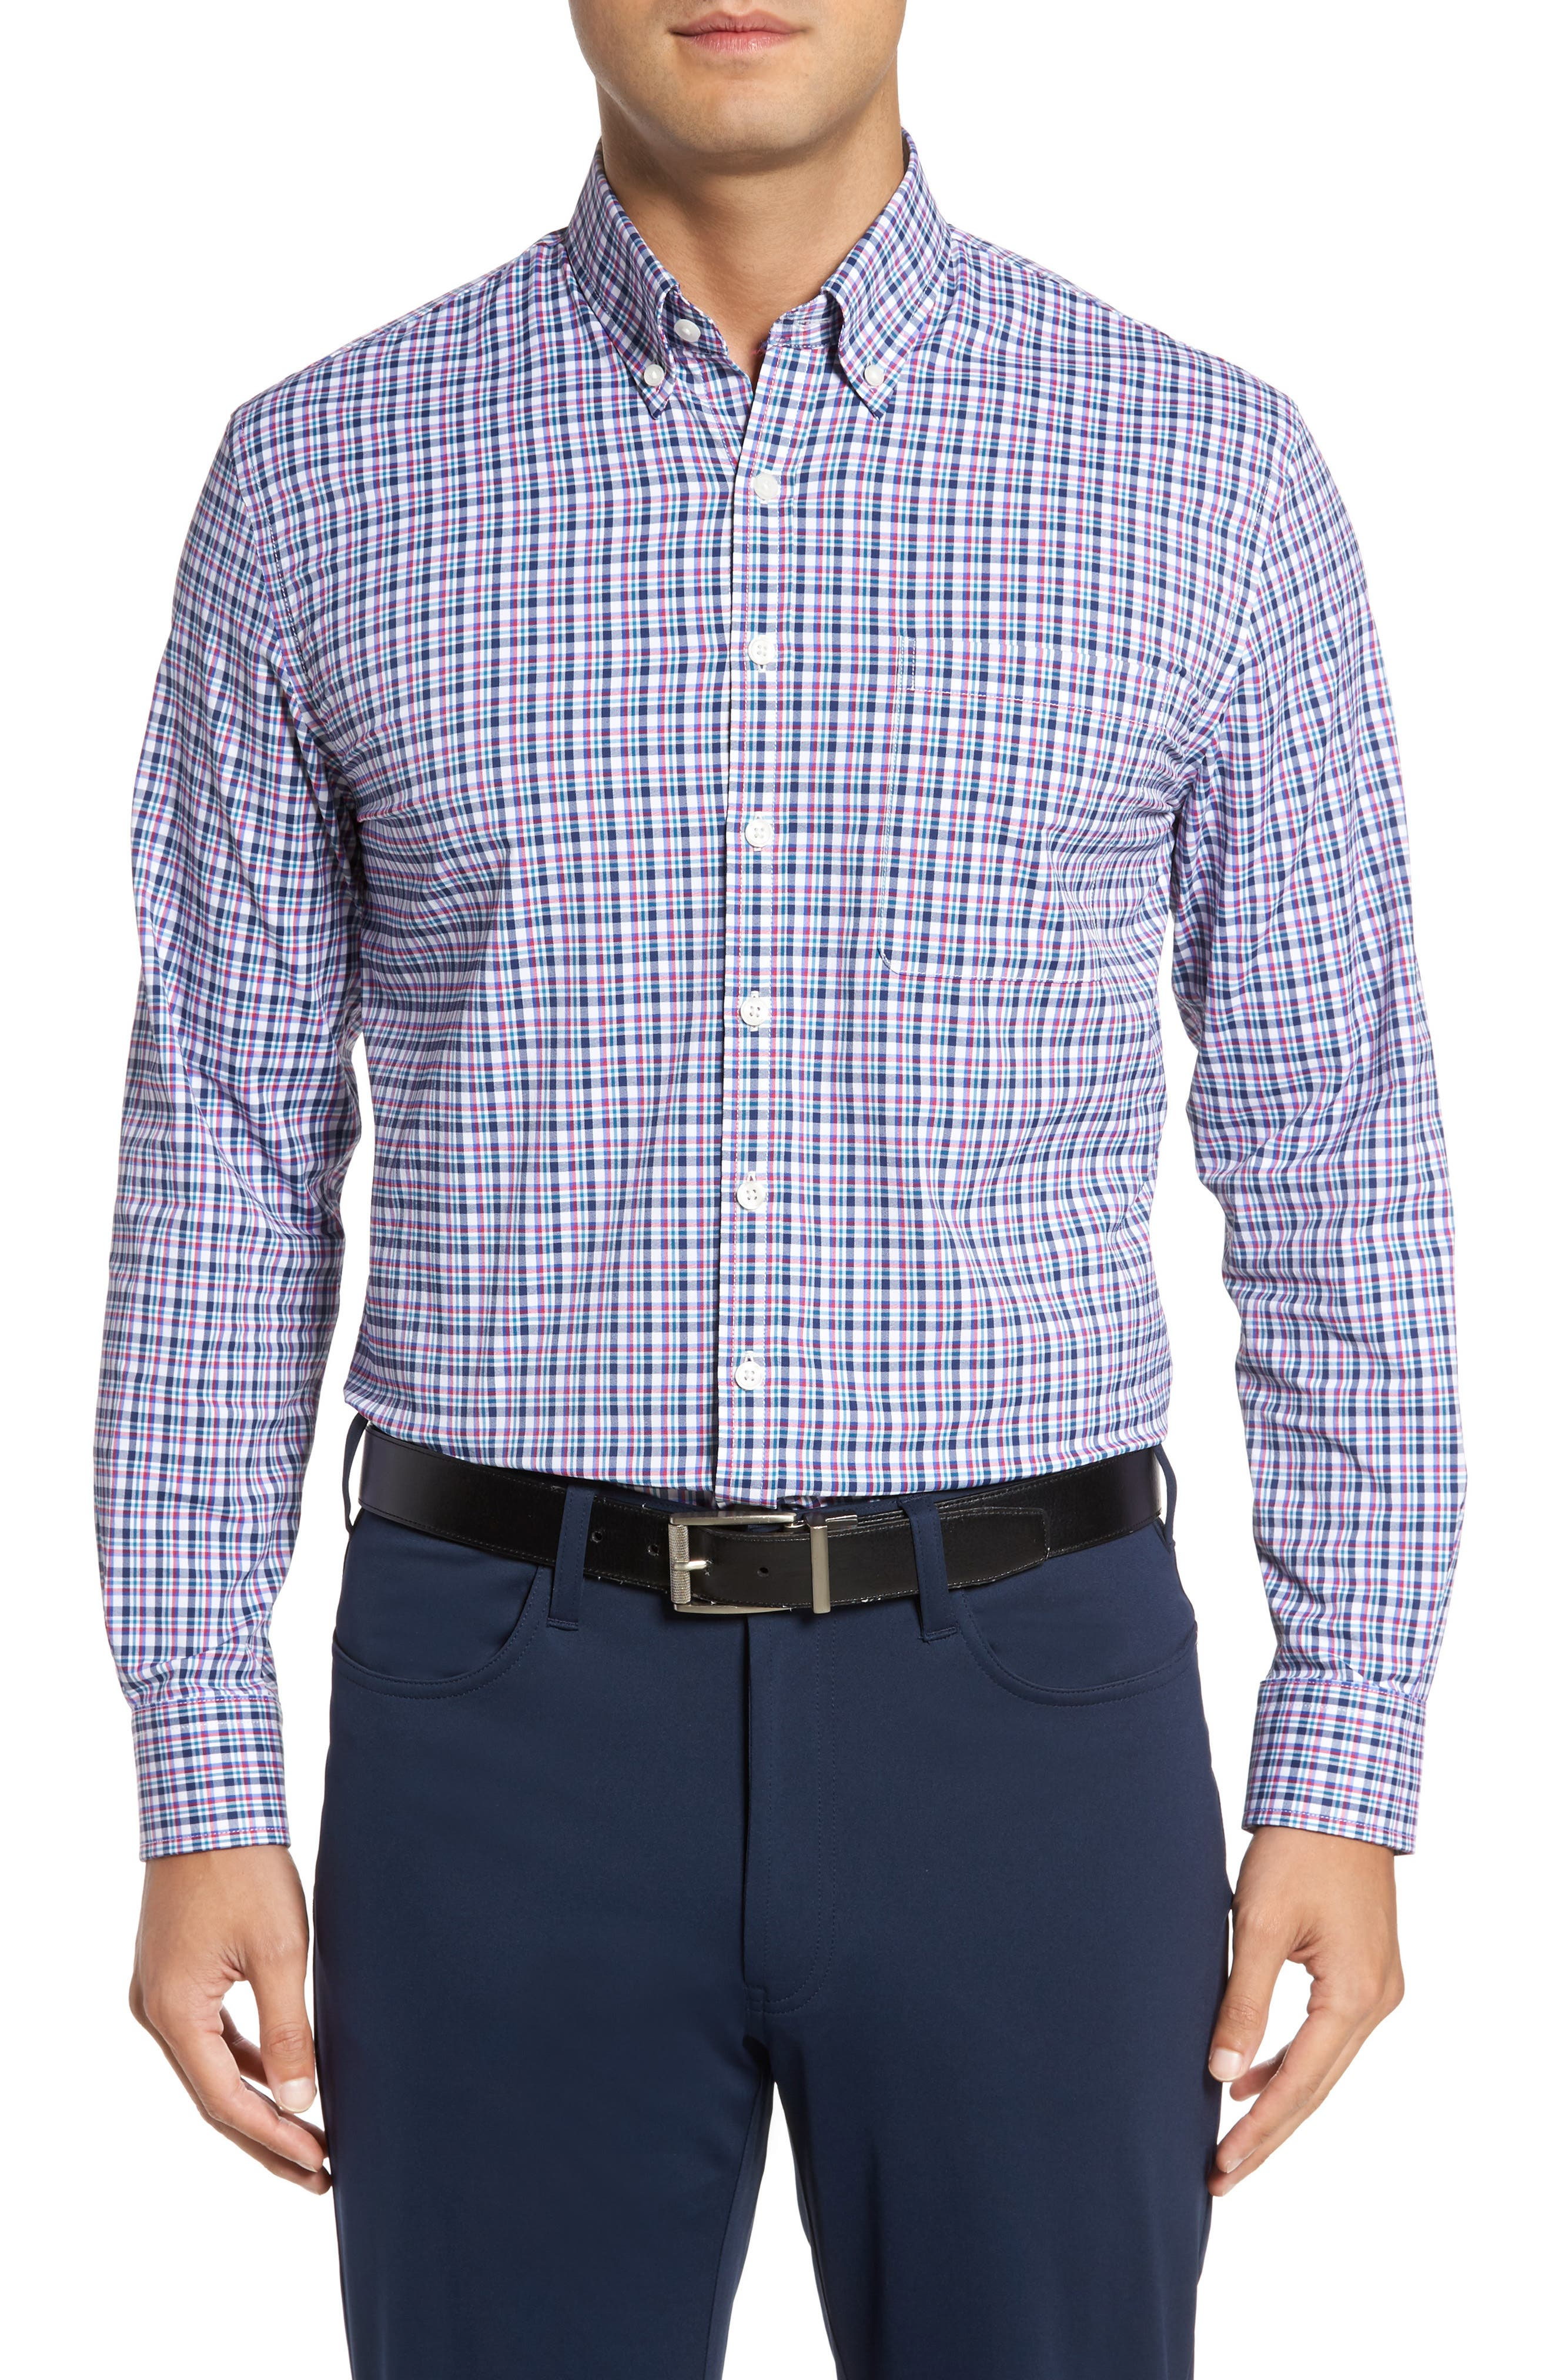 Alternate Image 1 Selected - Bobby Jones Matthers Easy Care Plaid Sport Shirt